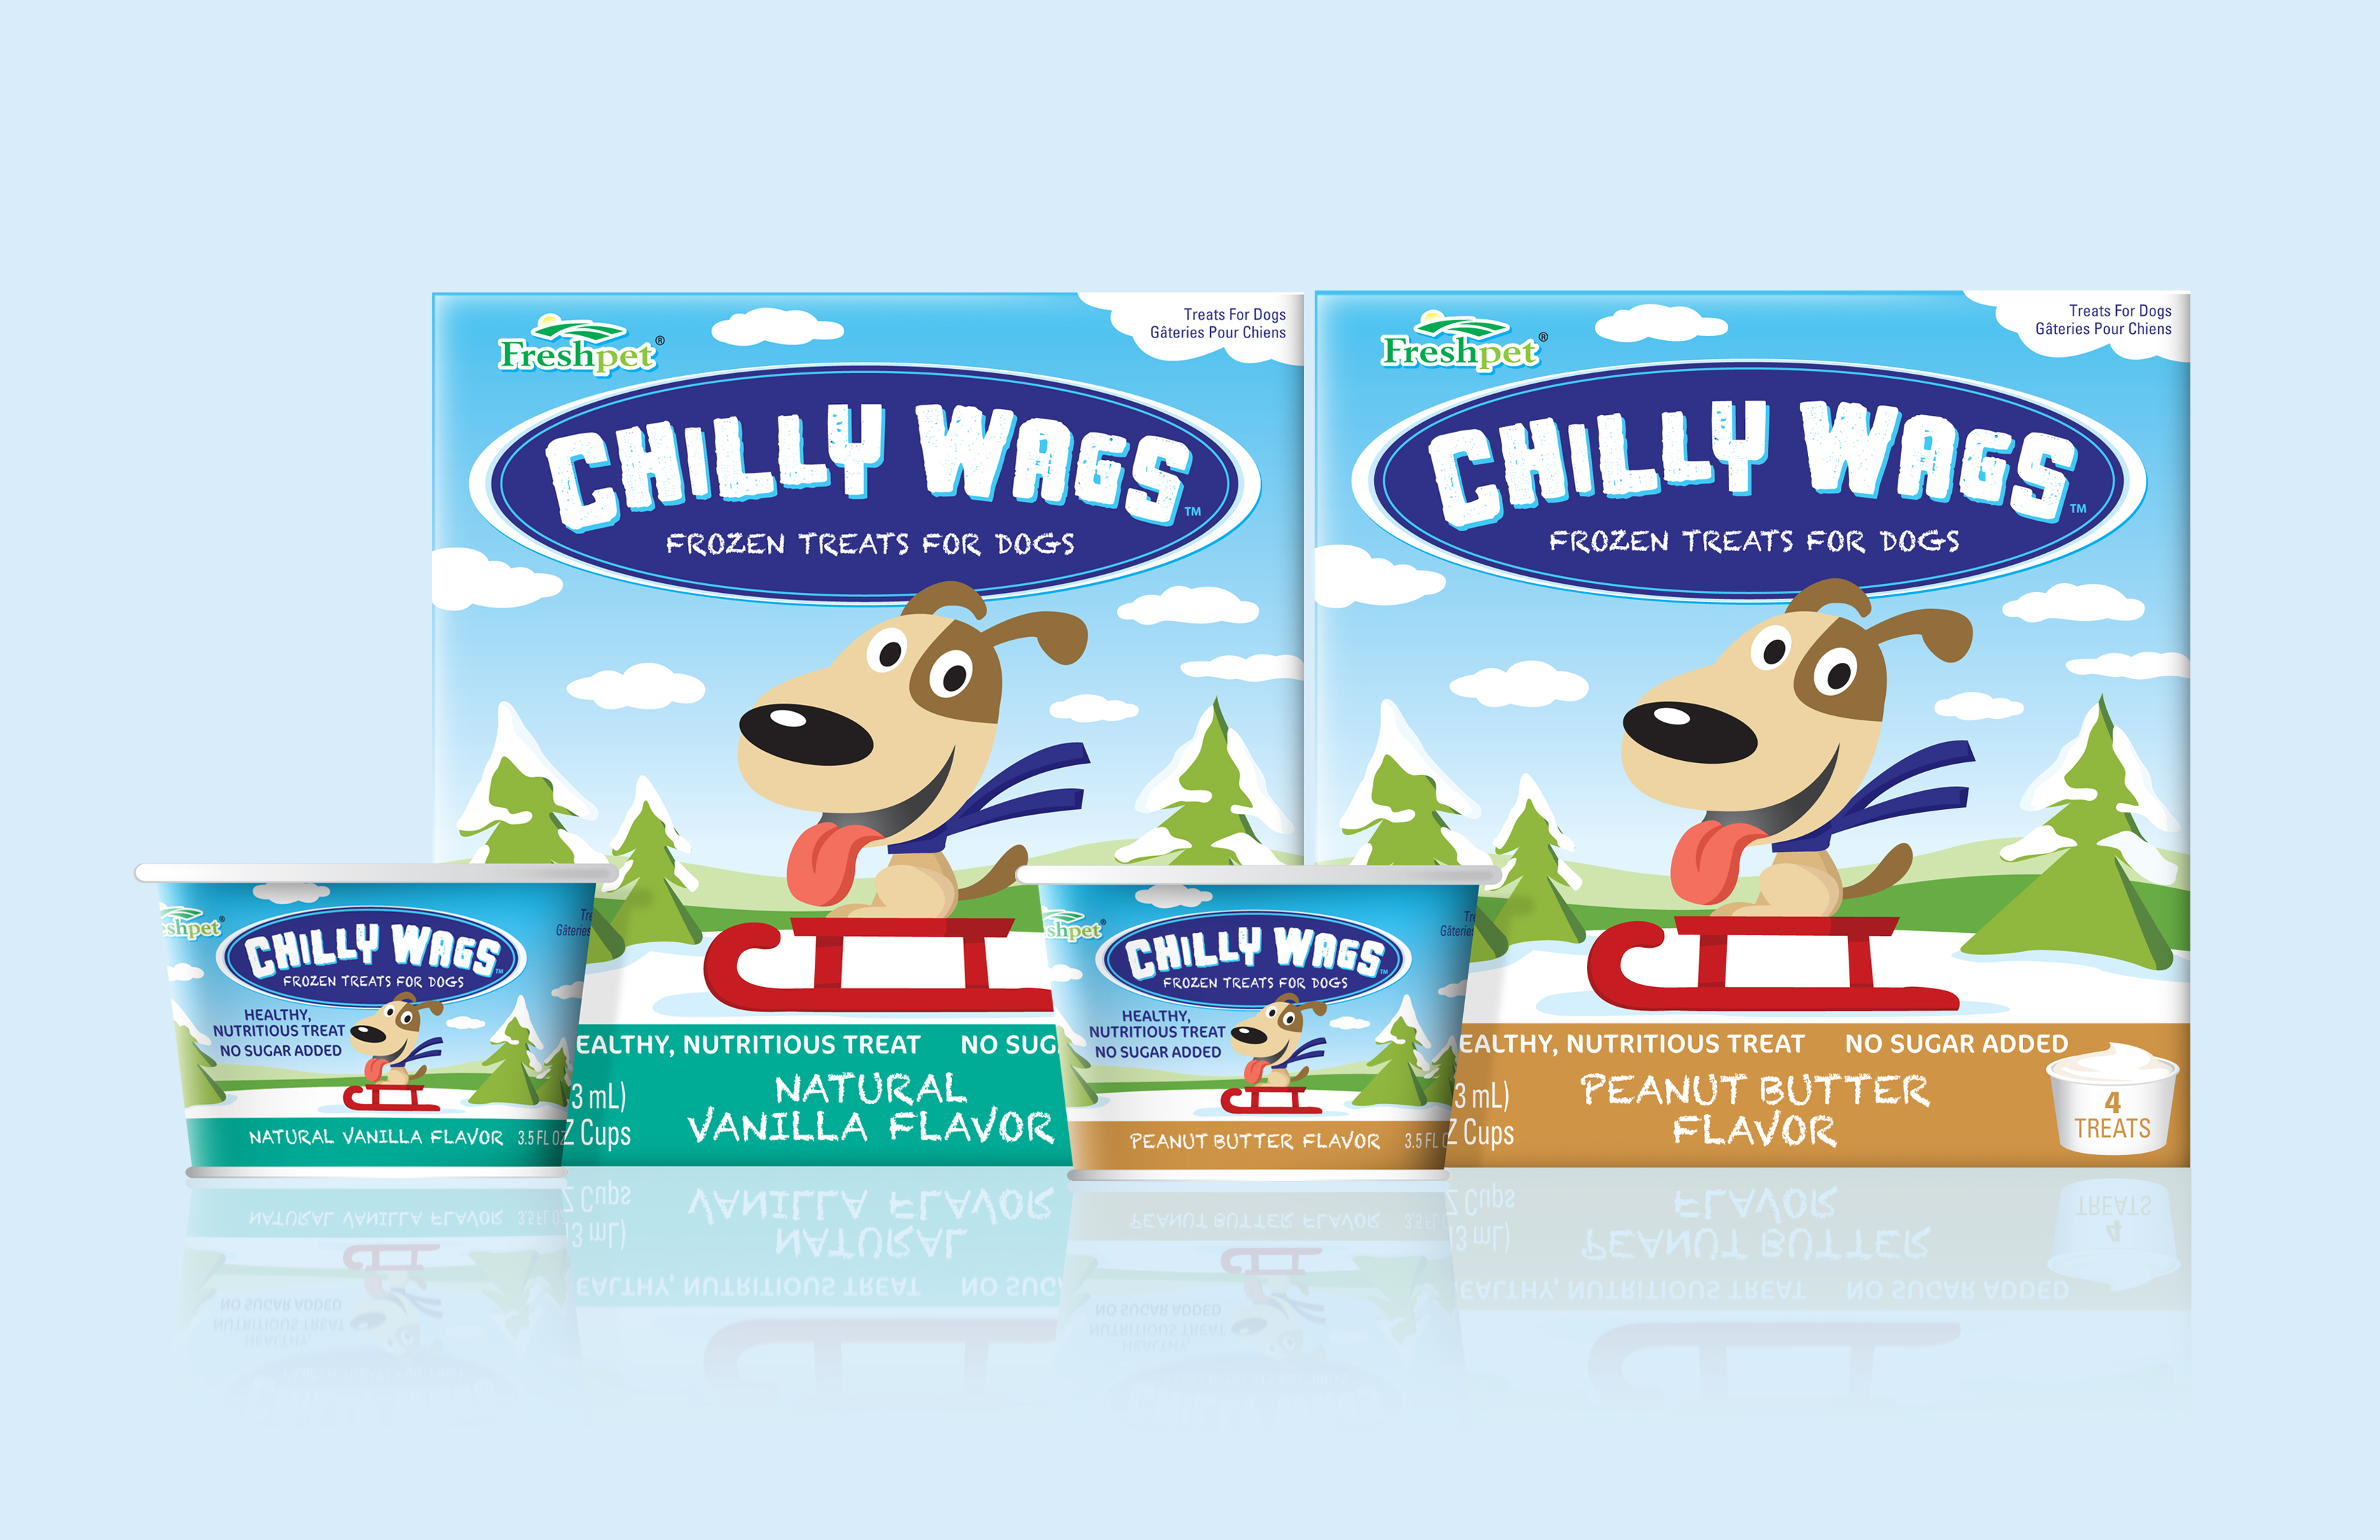 Chilly Wags